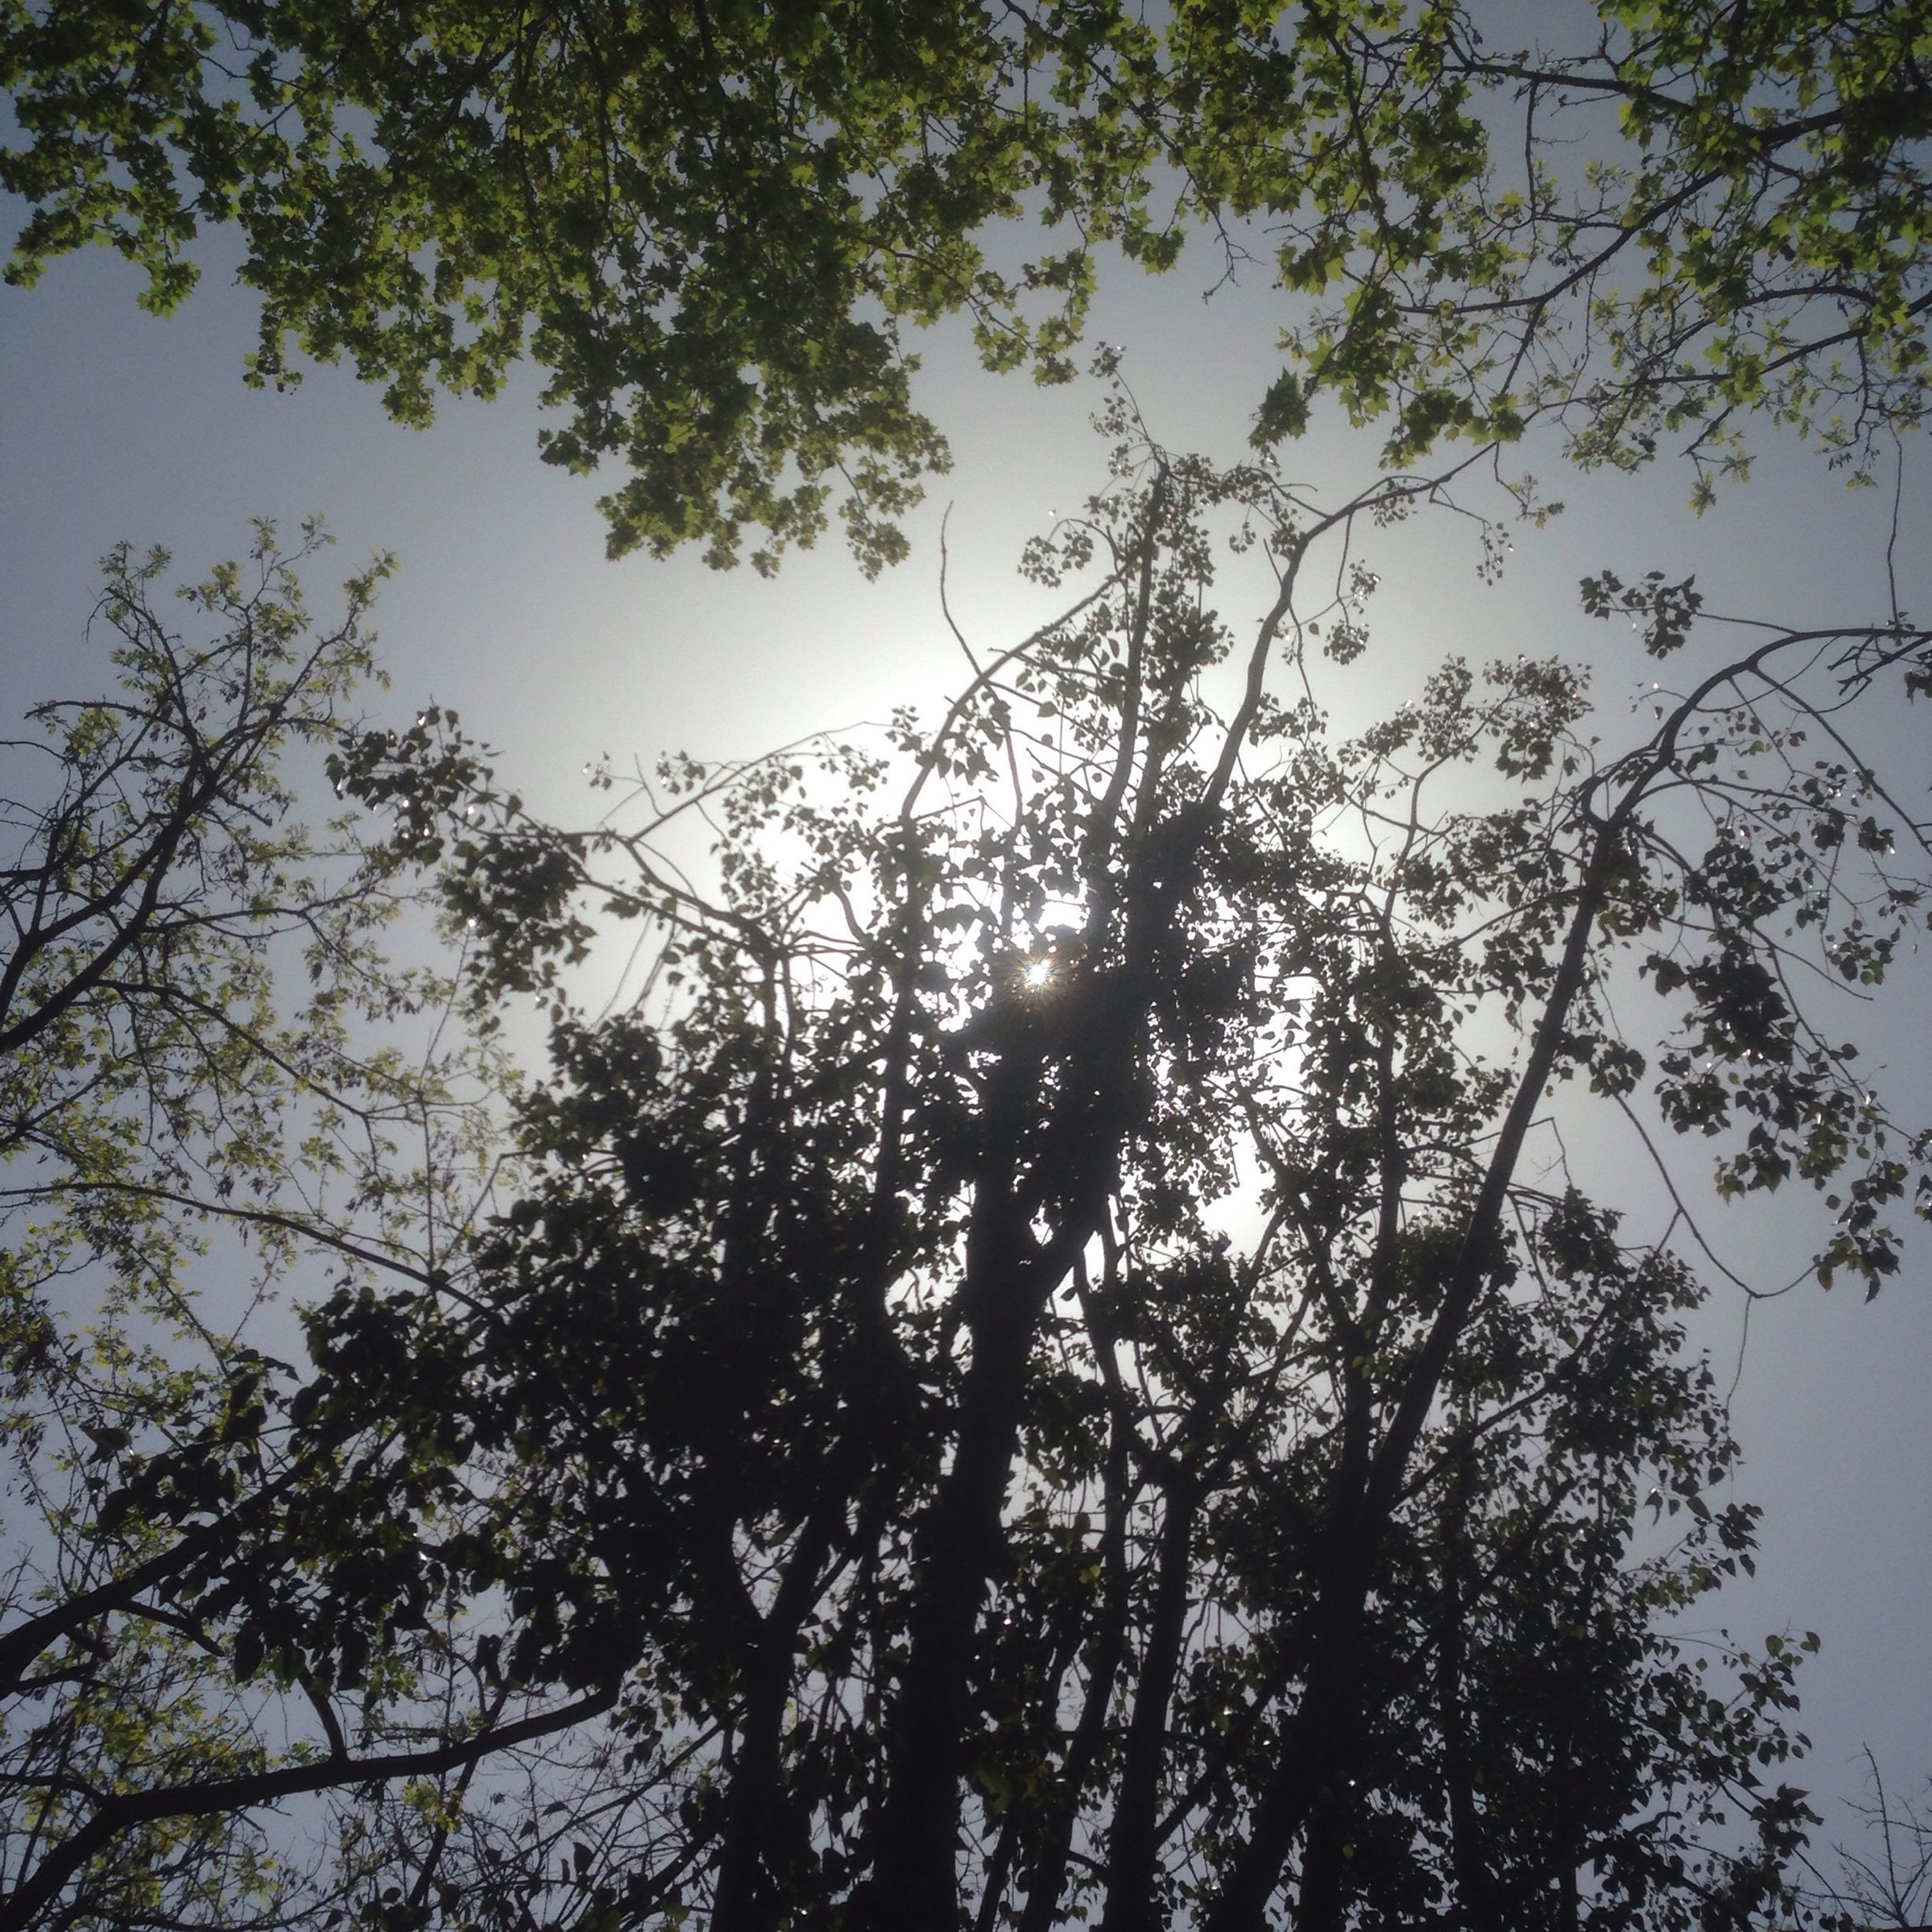 tree, low angle view, branch, growth, silhouette, tranquility, nature, sky, beauty in nature, clear sky, tree trunk, scenics, outdoors, no people, day, tranquil scene, sunlight, forest, leaf, high section